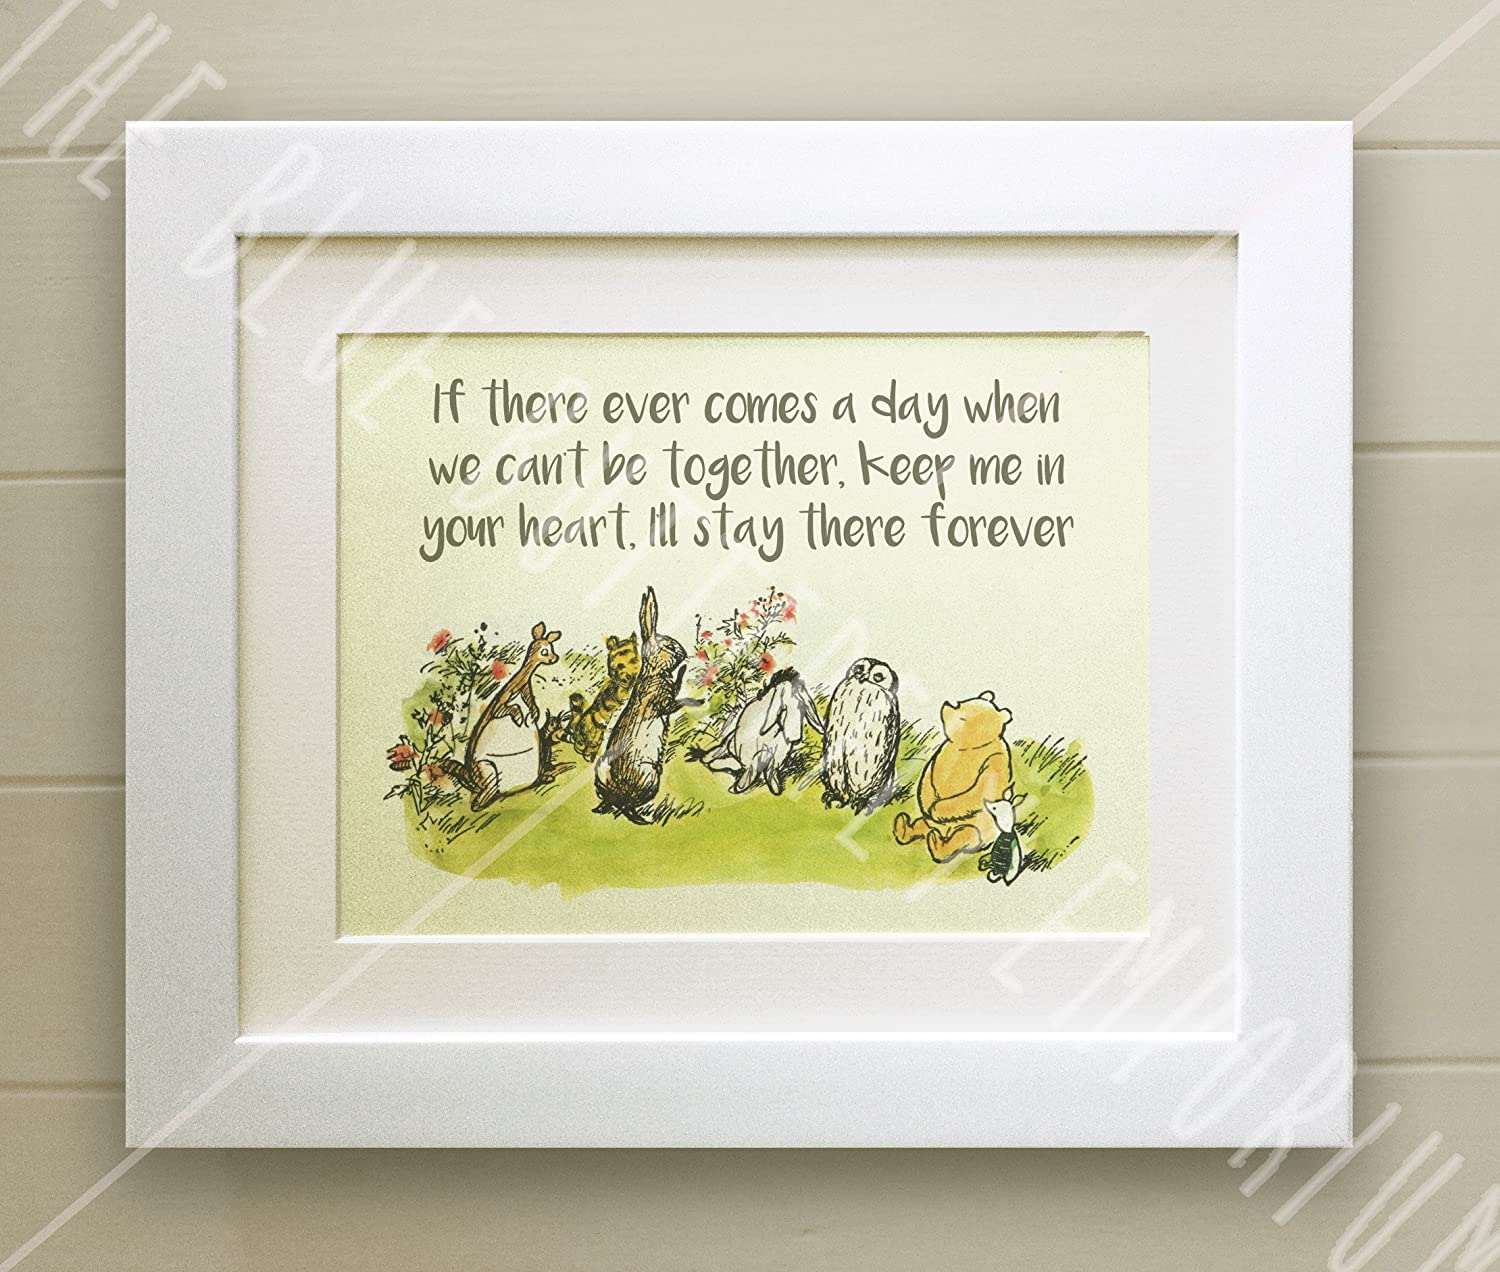 Winnie the Pooh FRAMED QUOTE PRINT, New Baby/Birth, Nursery Picture ...